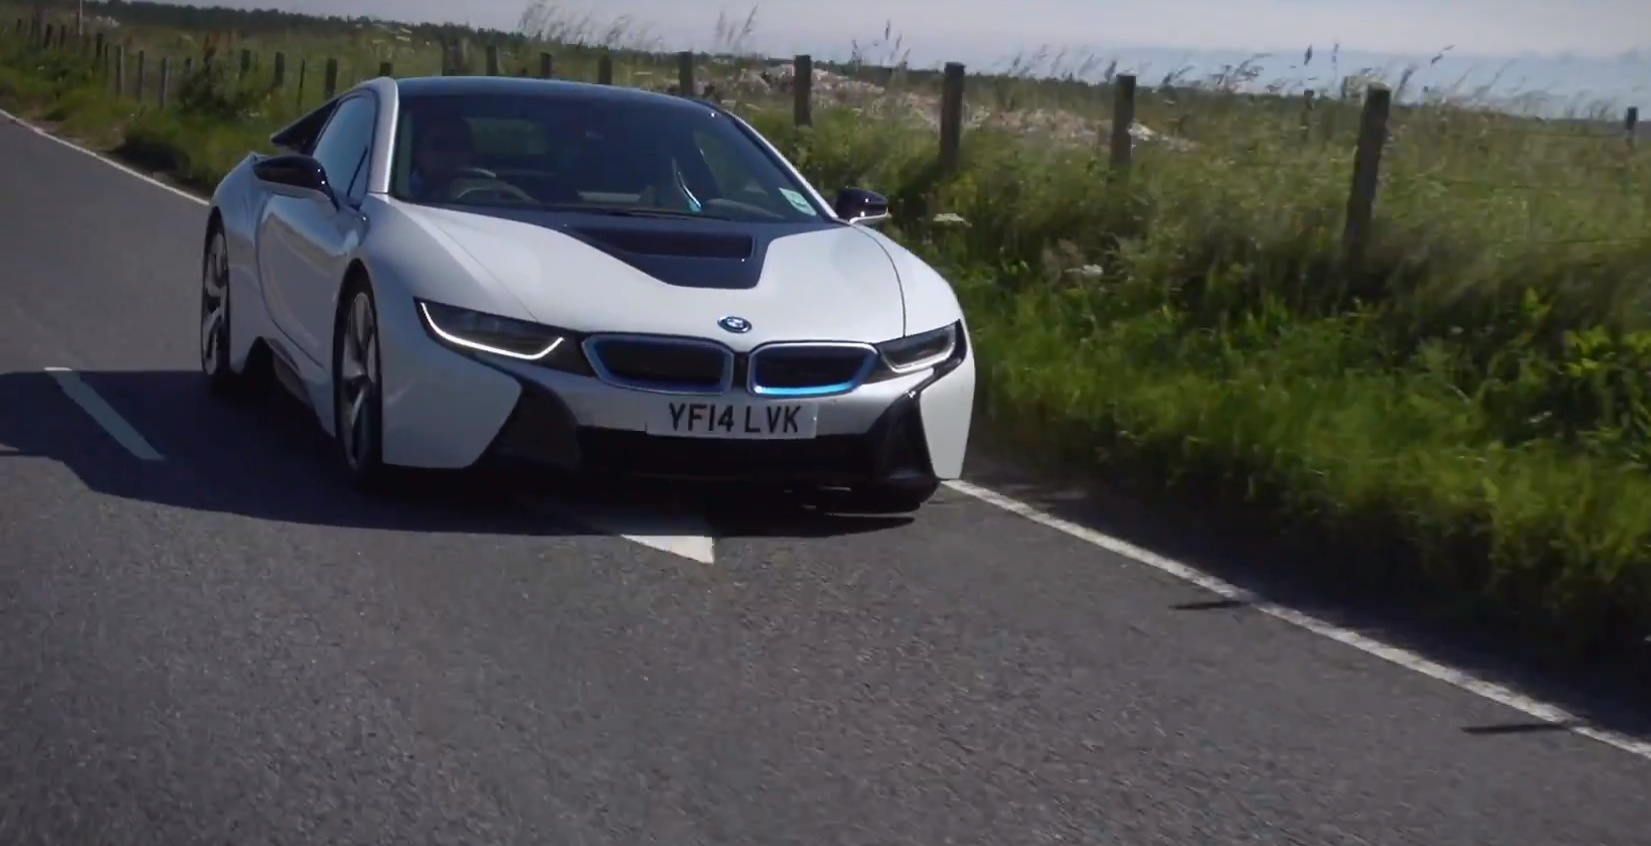 Bmw I8 Reviewed On Uk Roads Autoevolution